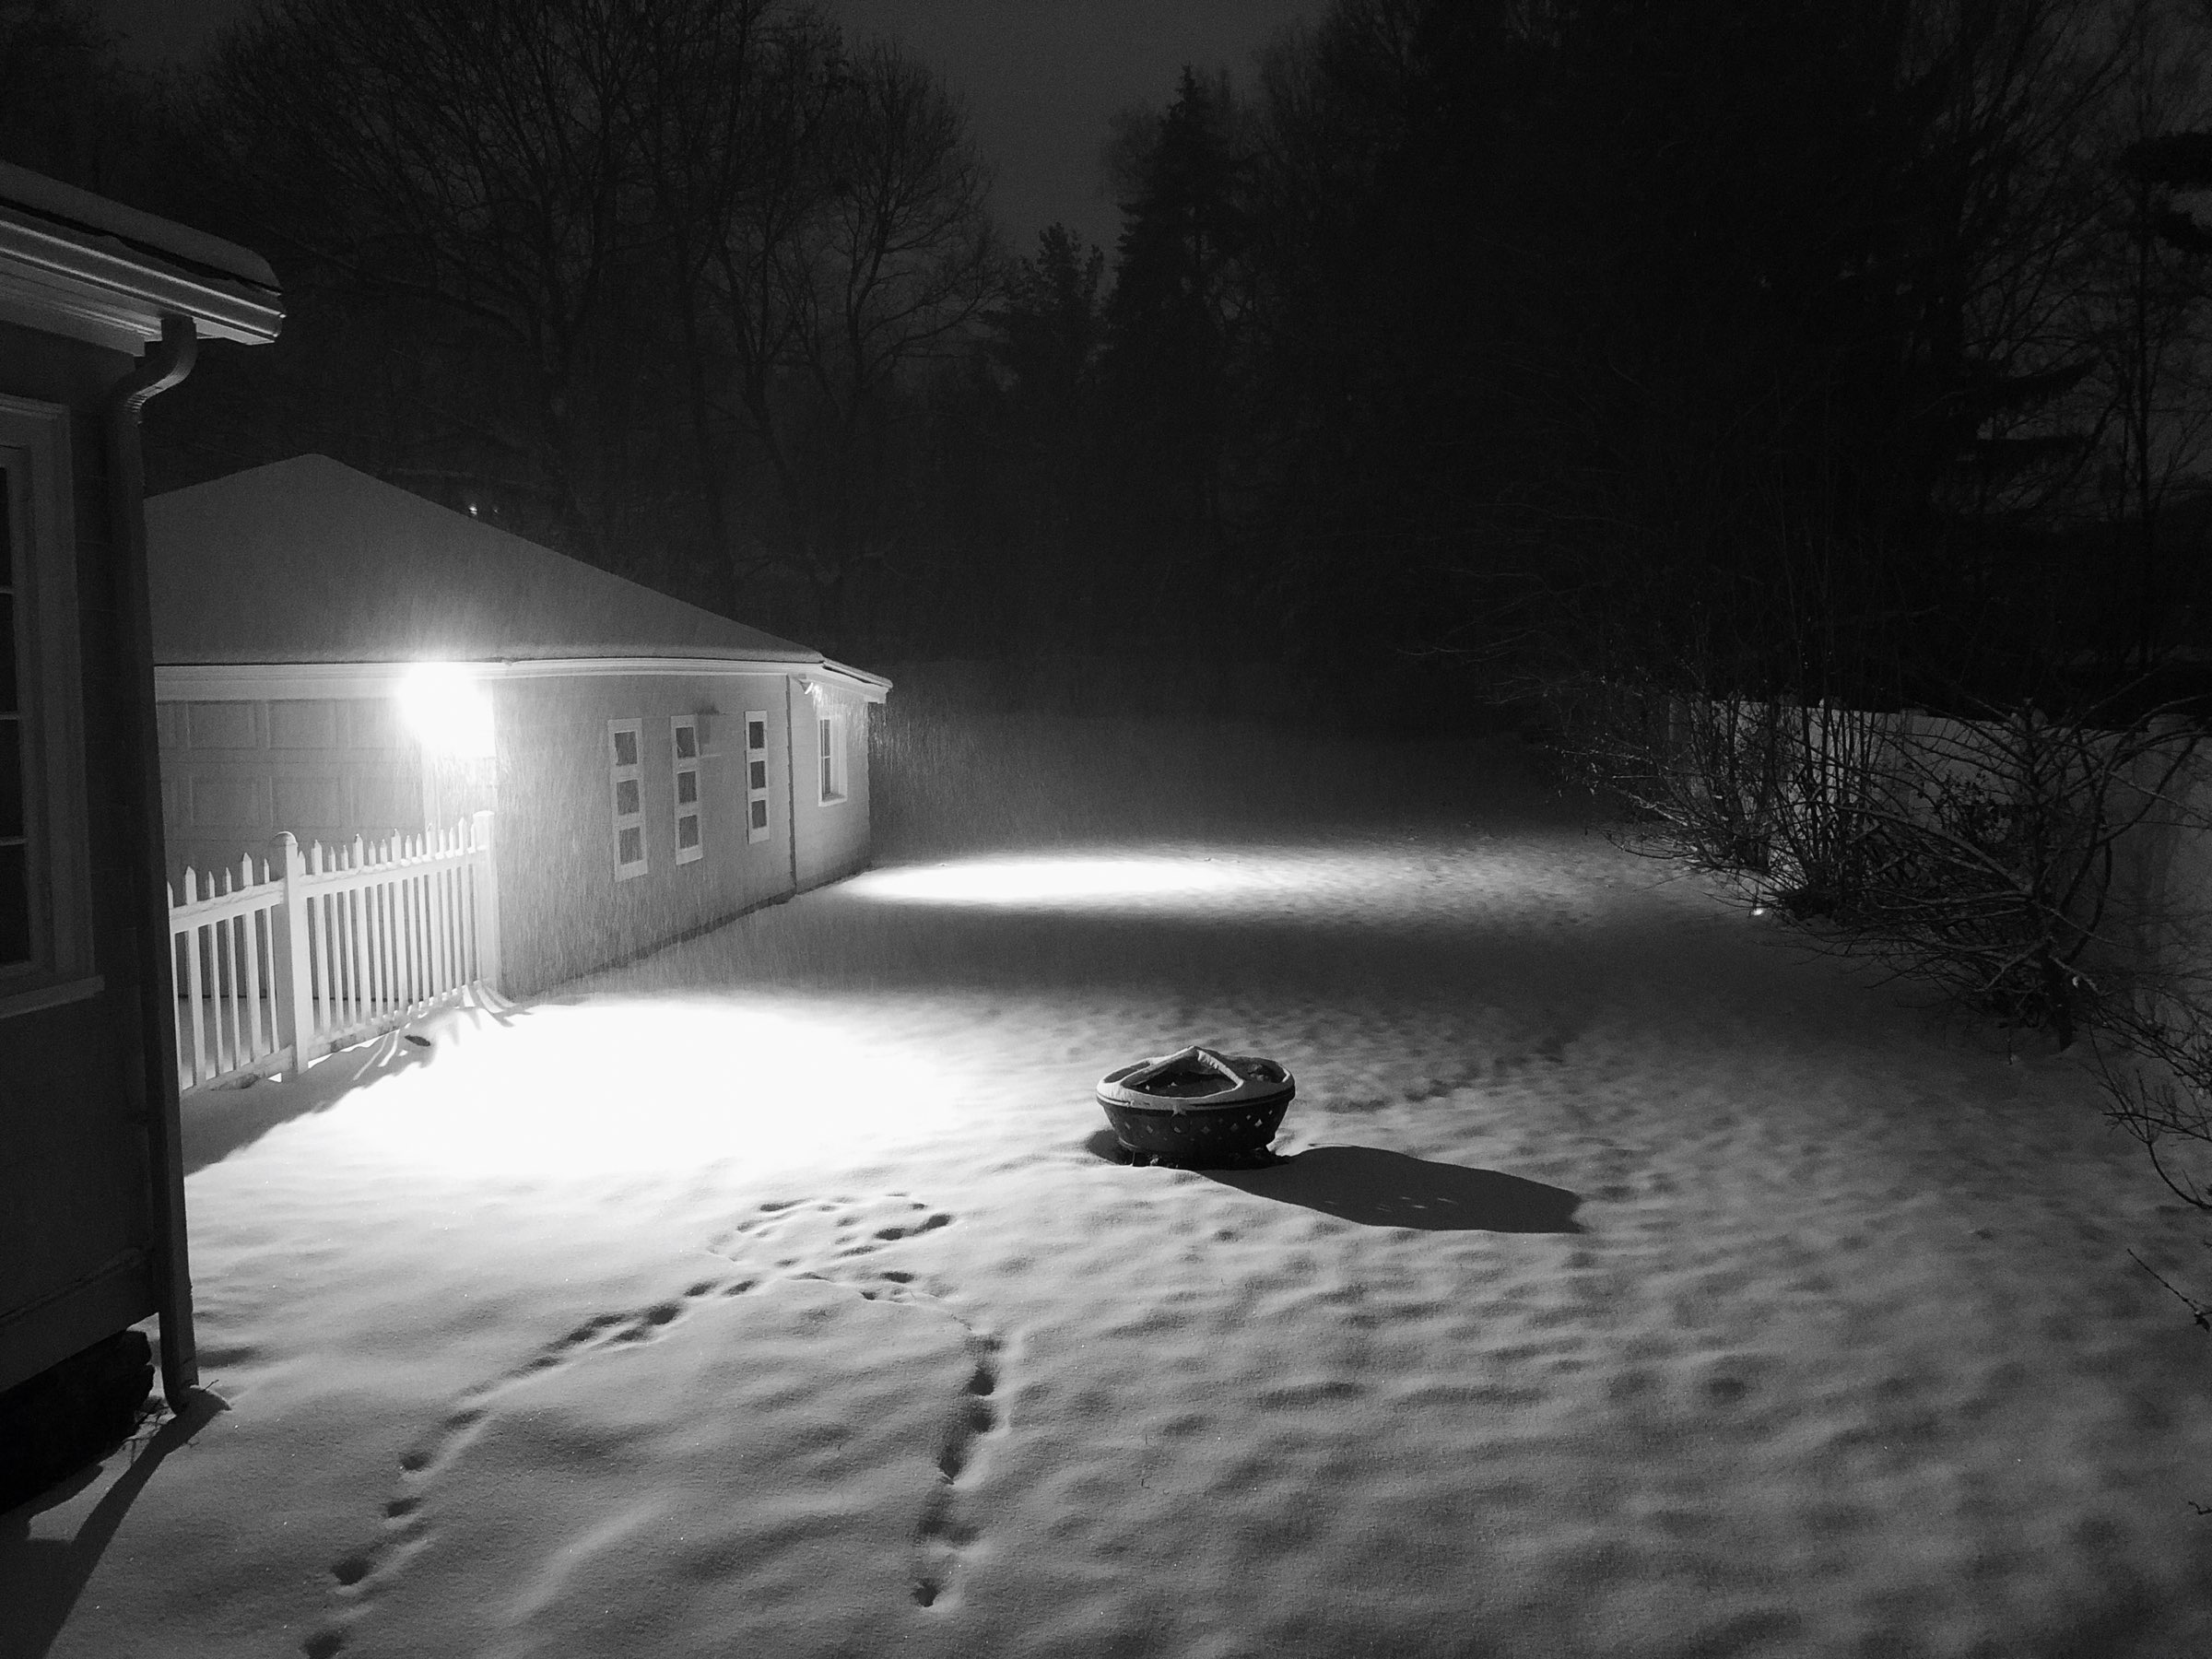 Empty scene of snow at night